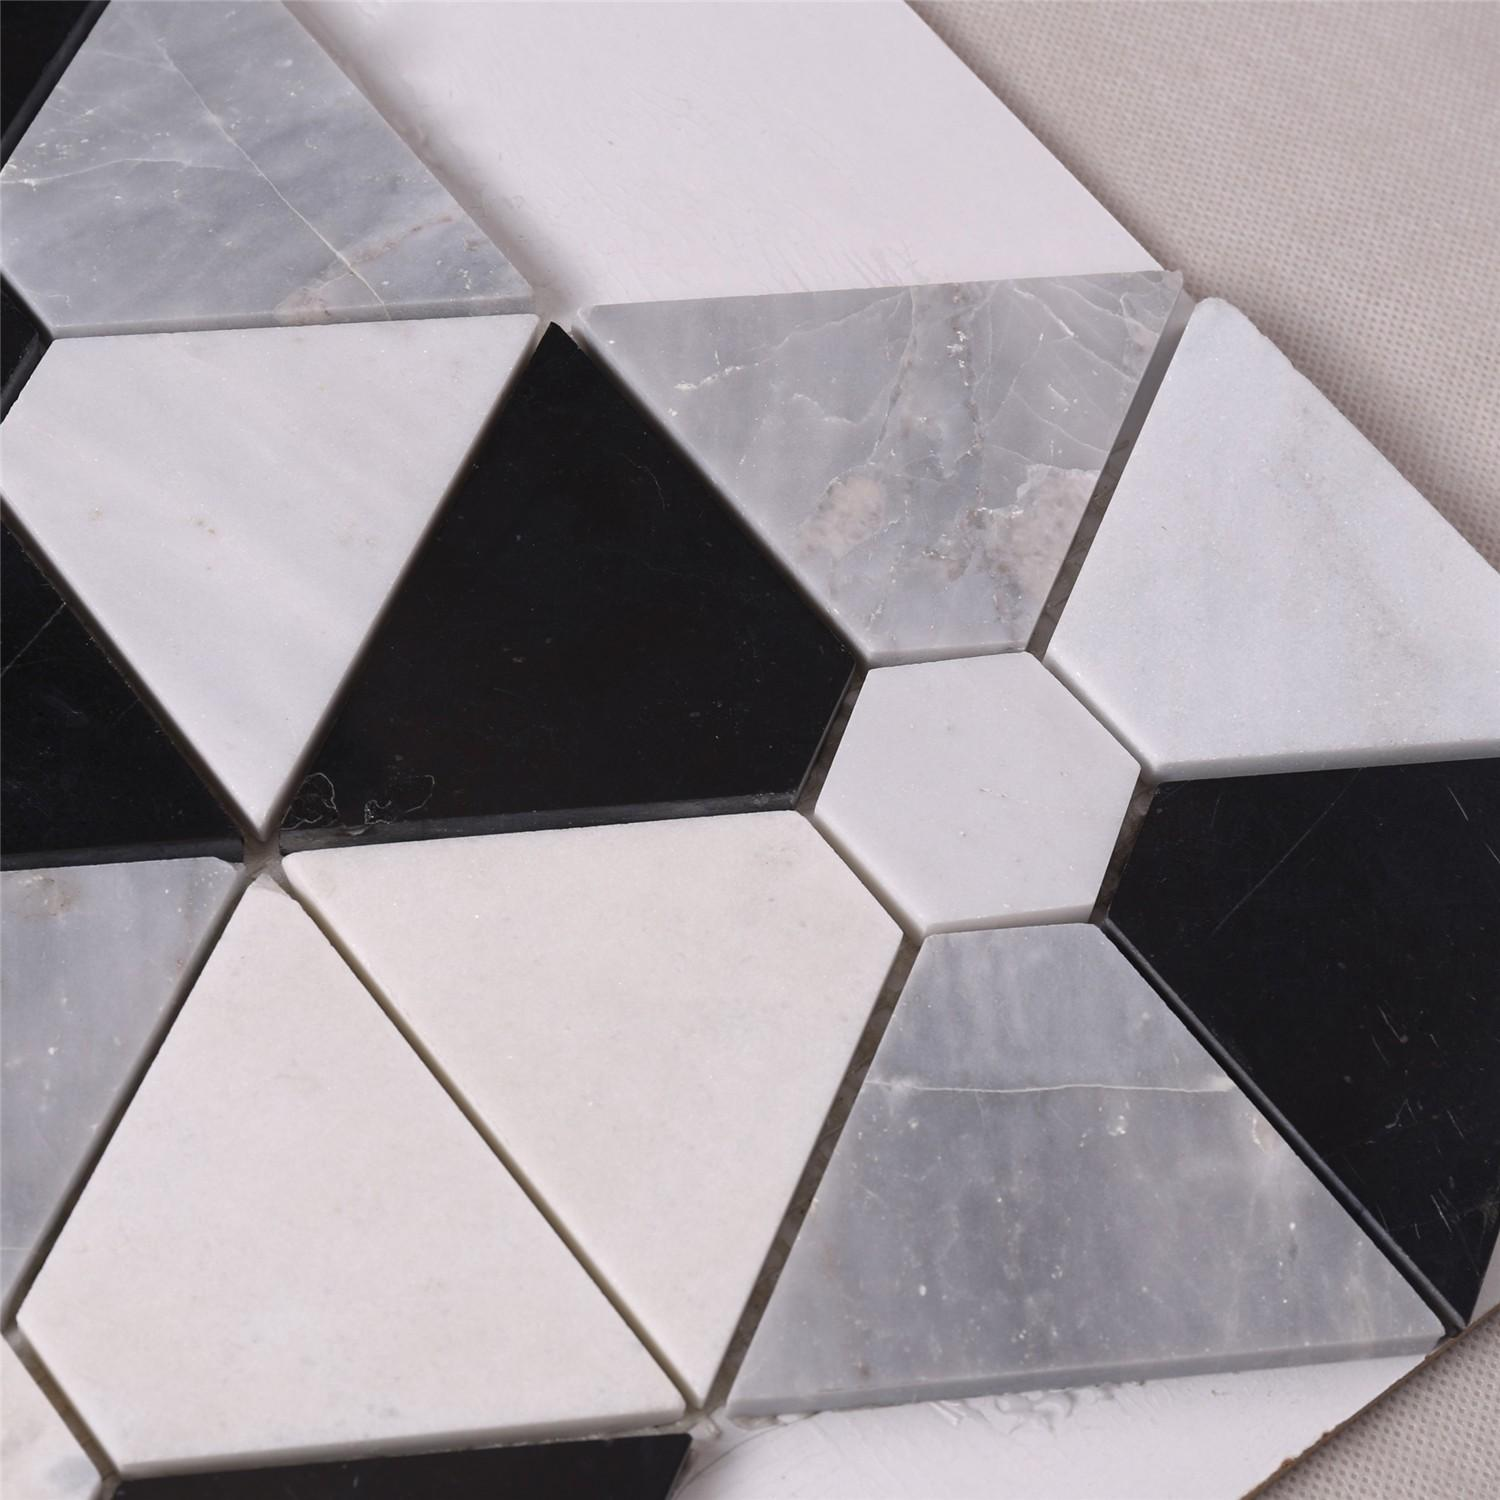 product-Heng Xing-Hexagon Combination Shape White Mixed Black Stone Mosaic Floor Tile-img